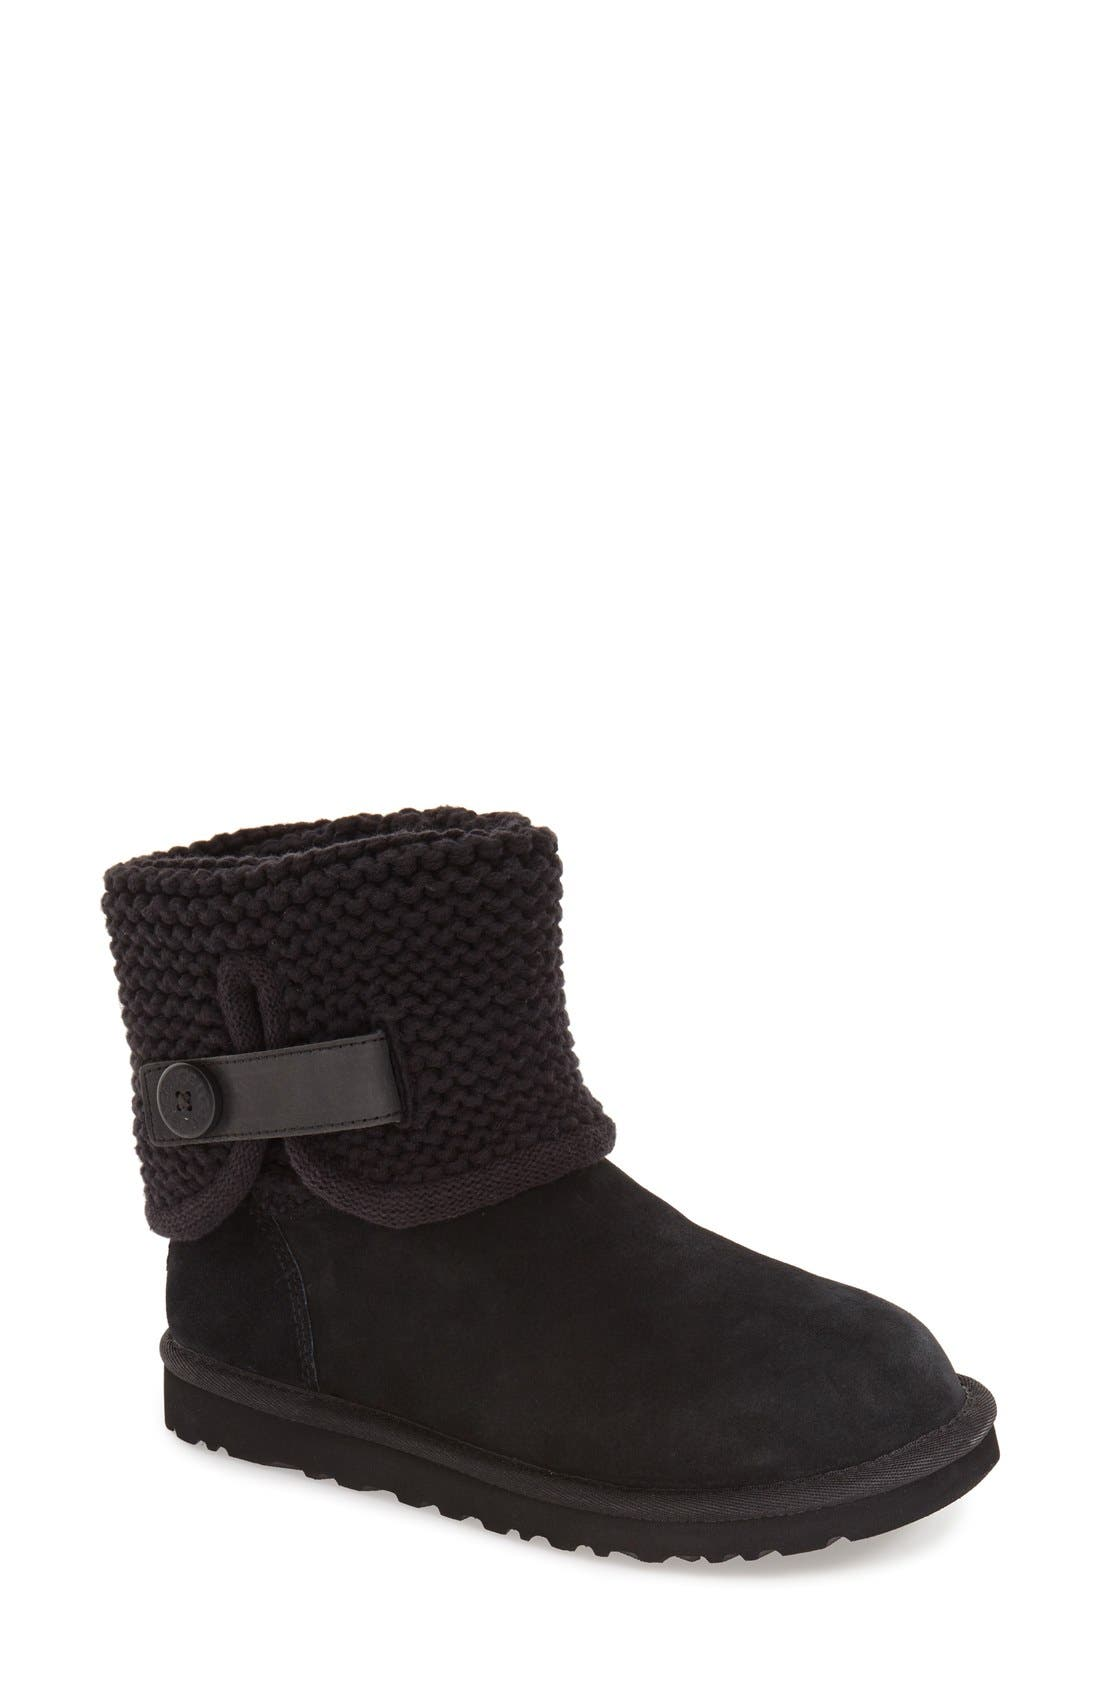 Shaina Knit Cuff Bootie,                             Main thumbnail 2, color,